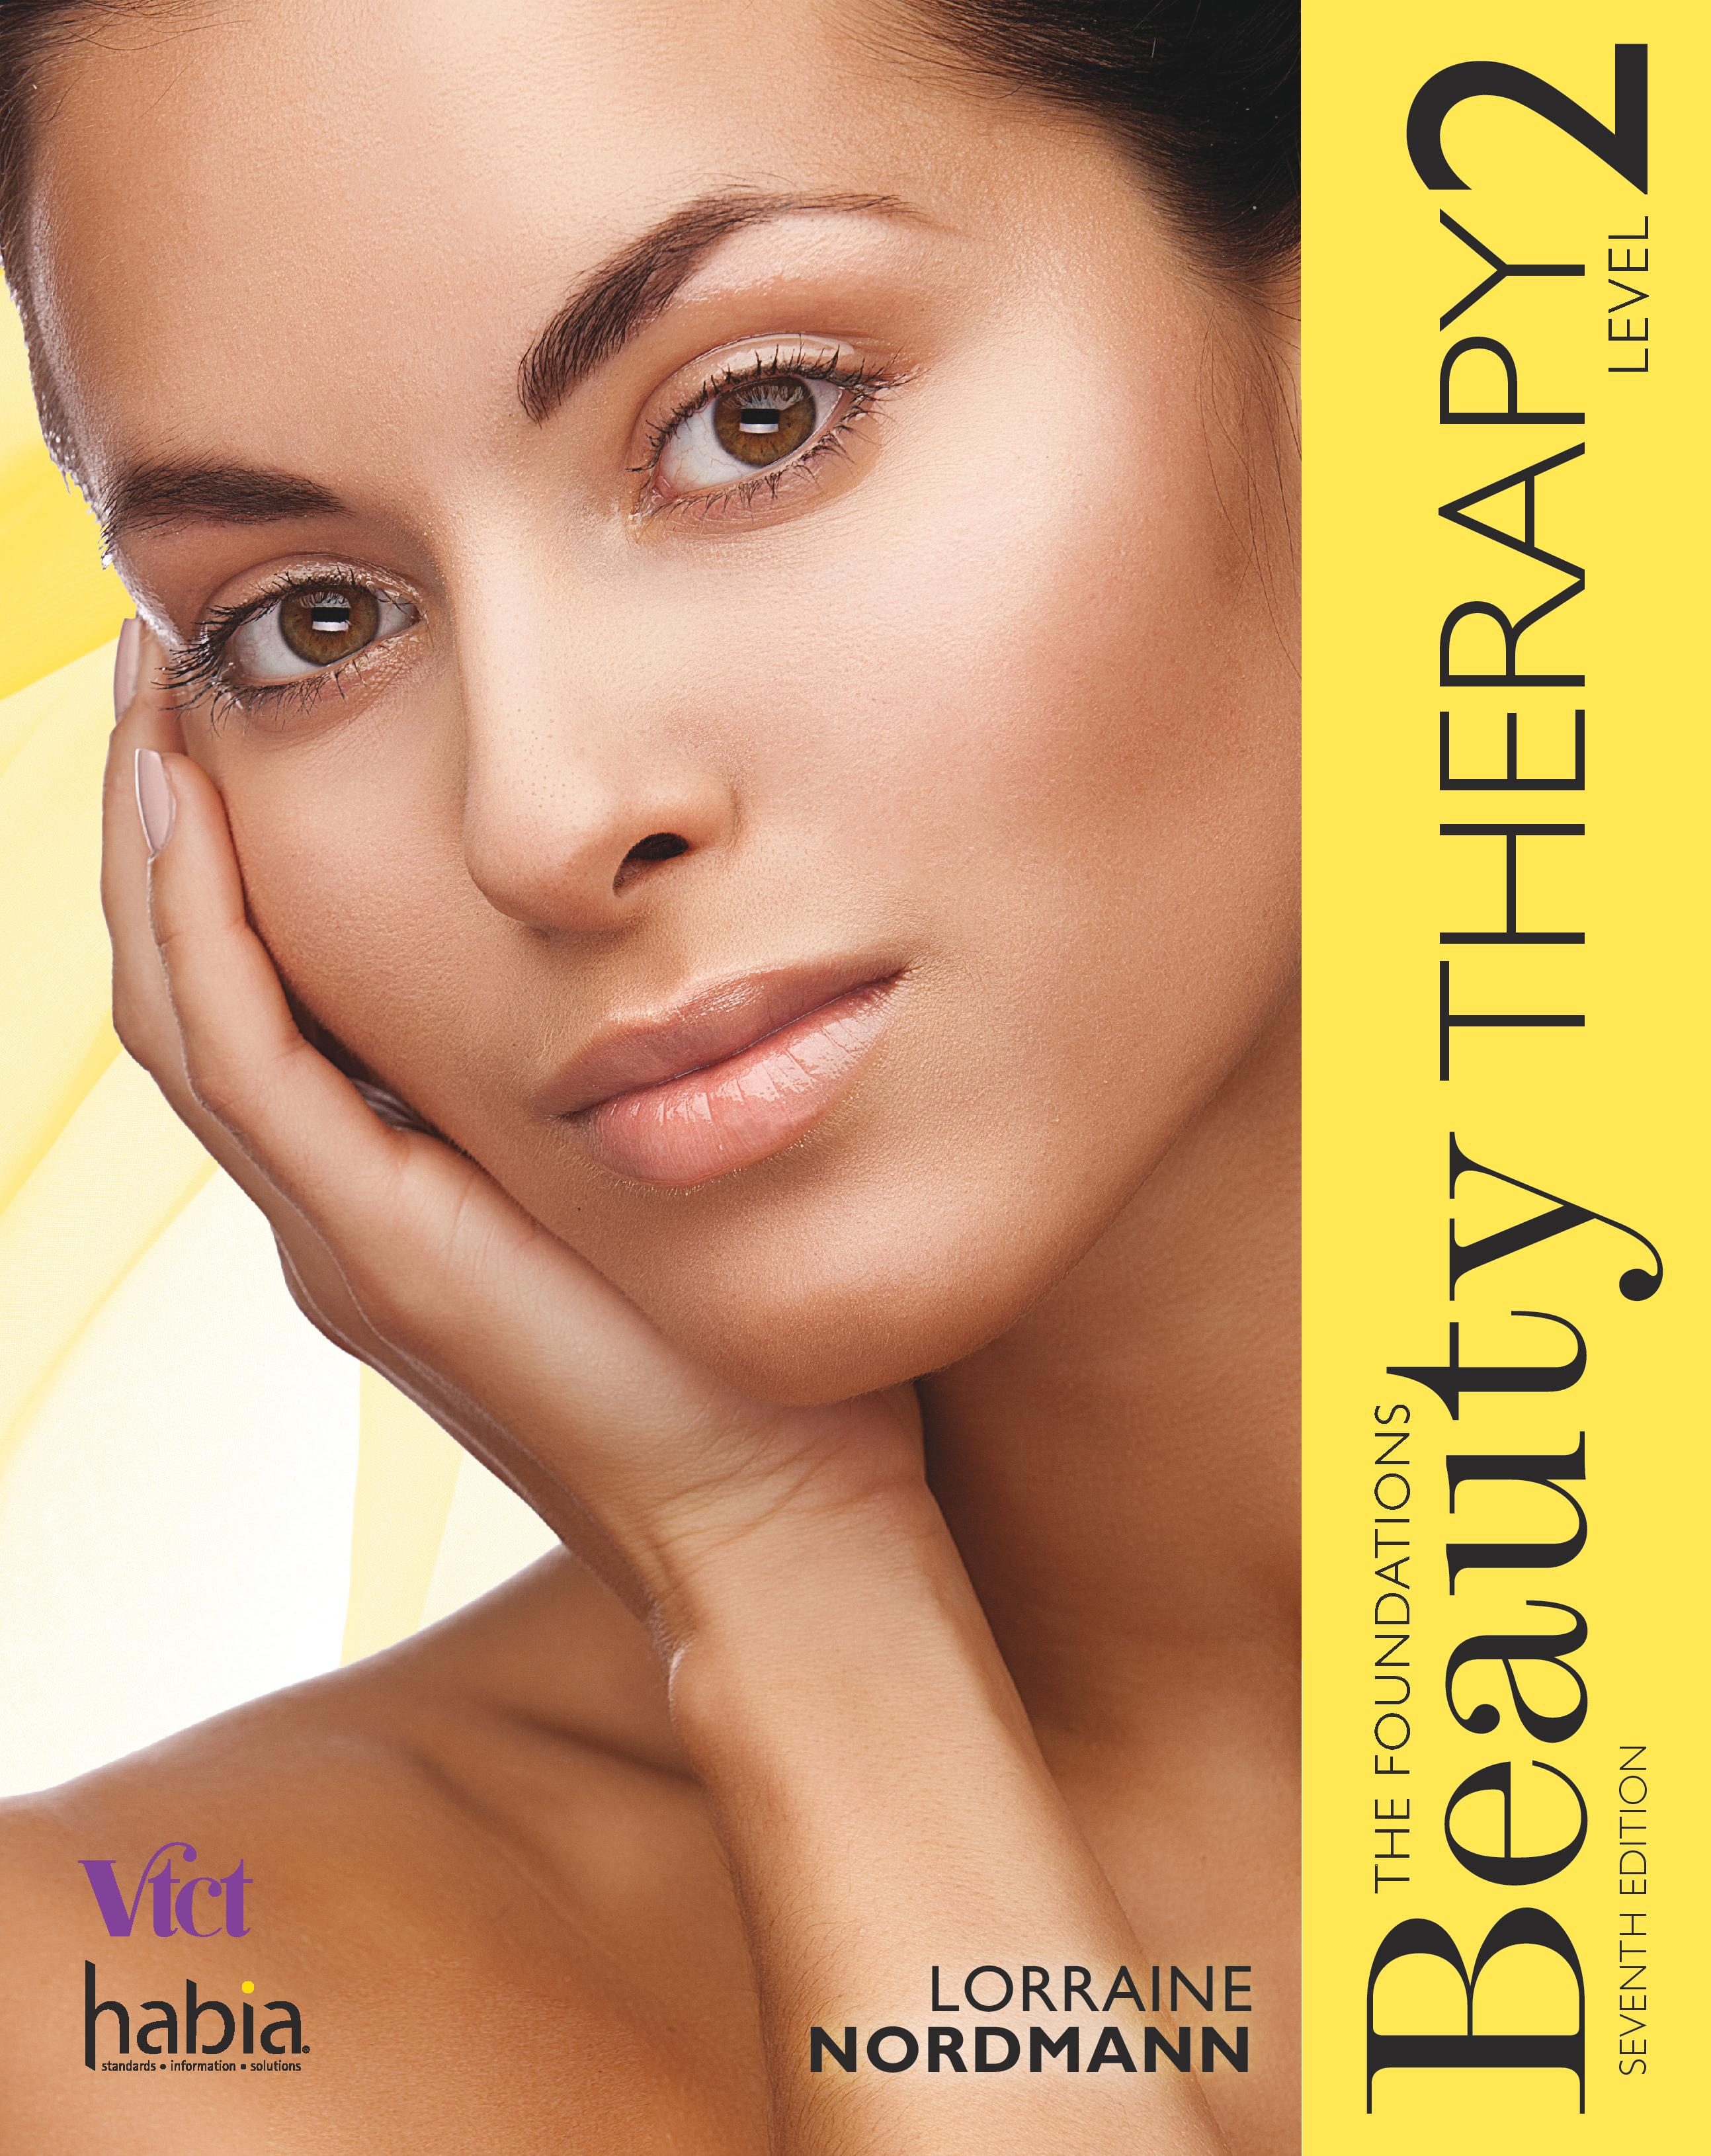 Beauty Therapy the Foundations Level 2, 7th edition by Lorraine Nordmann